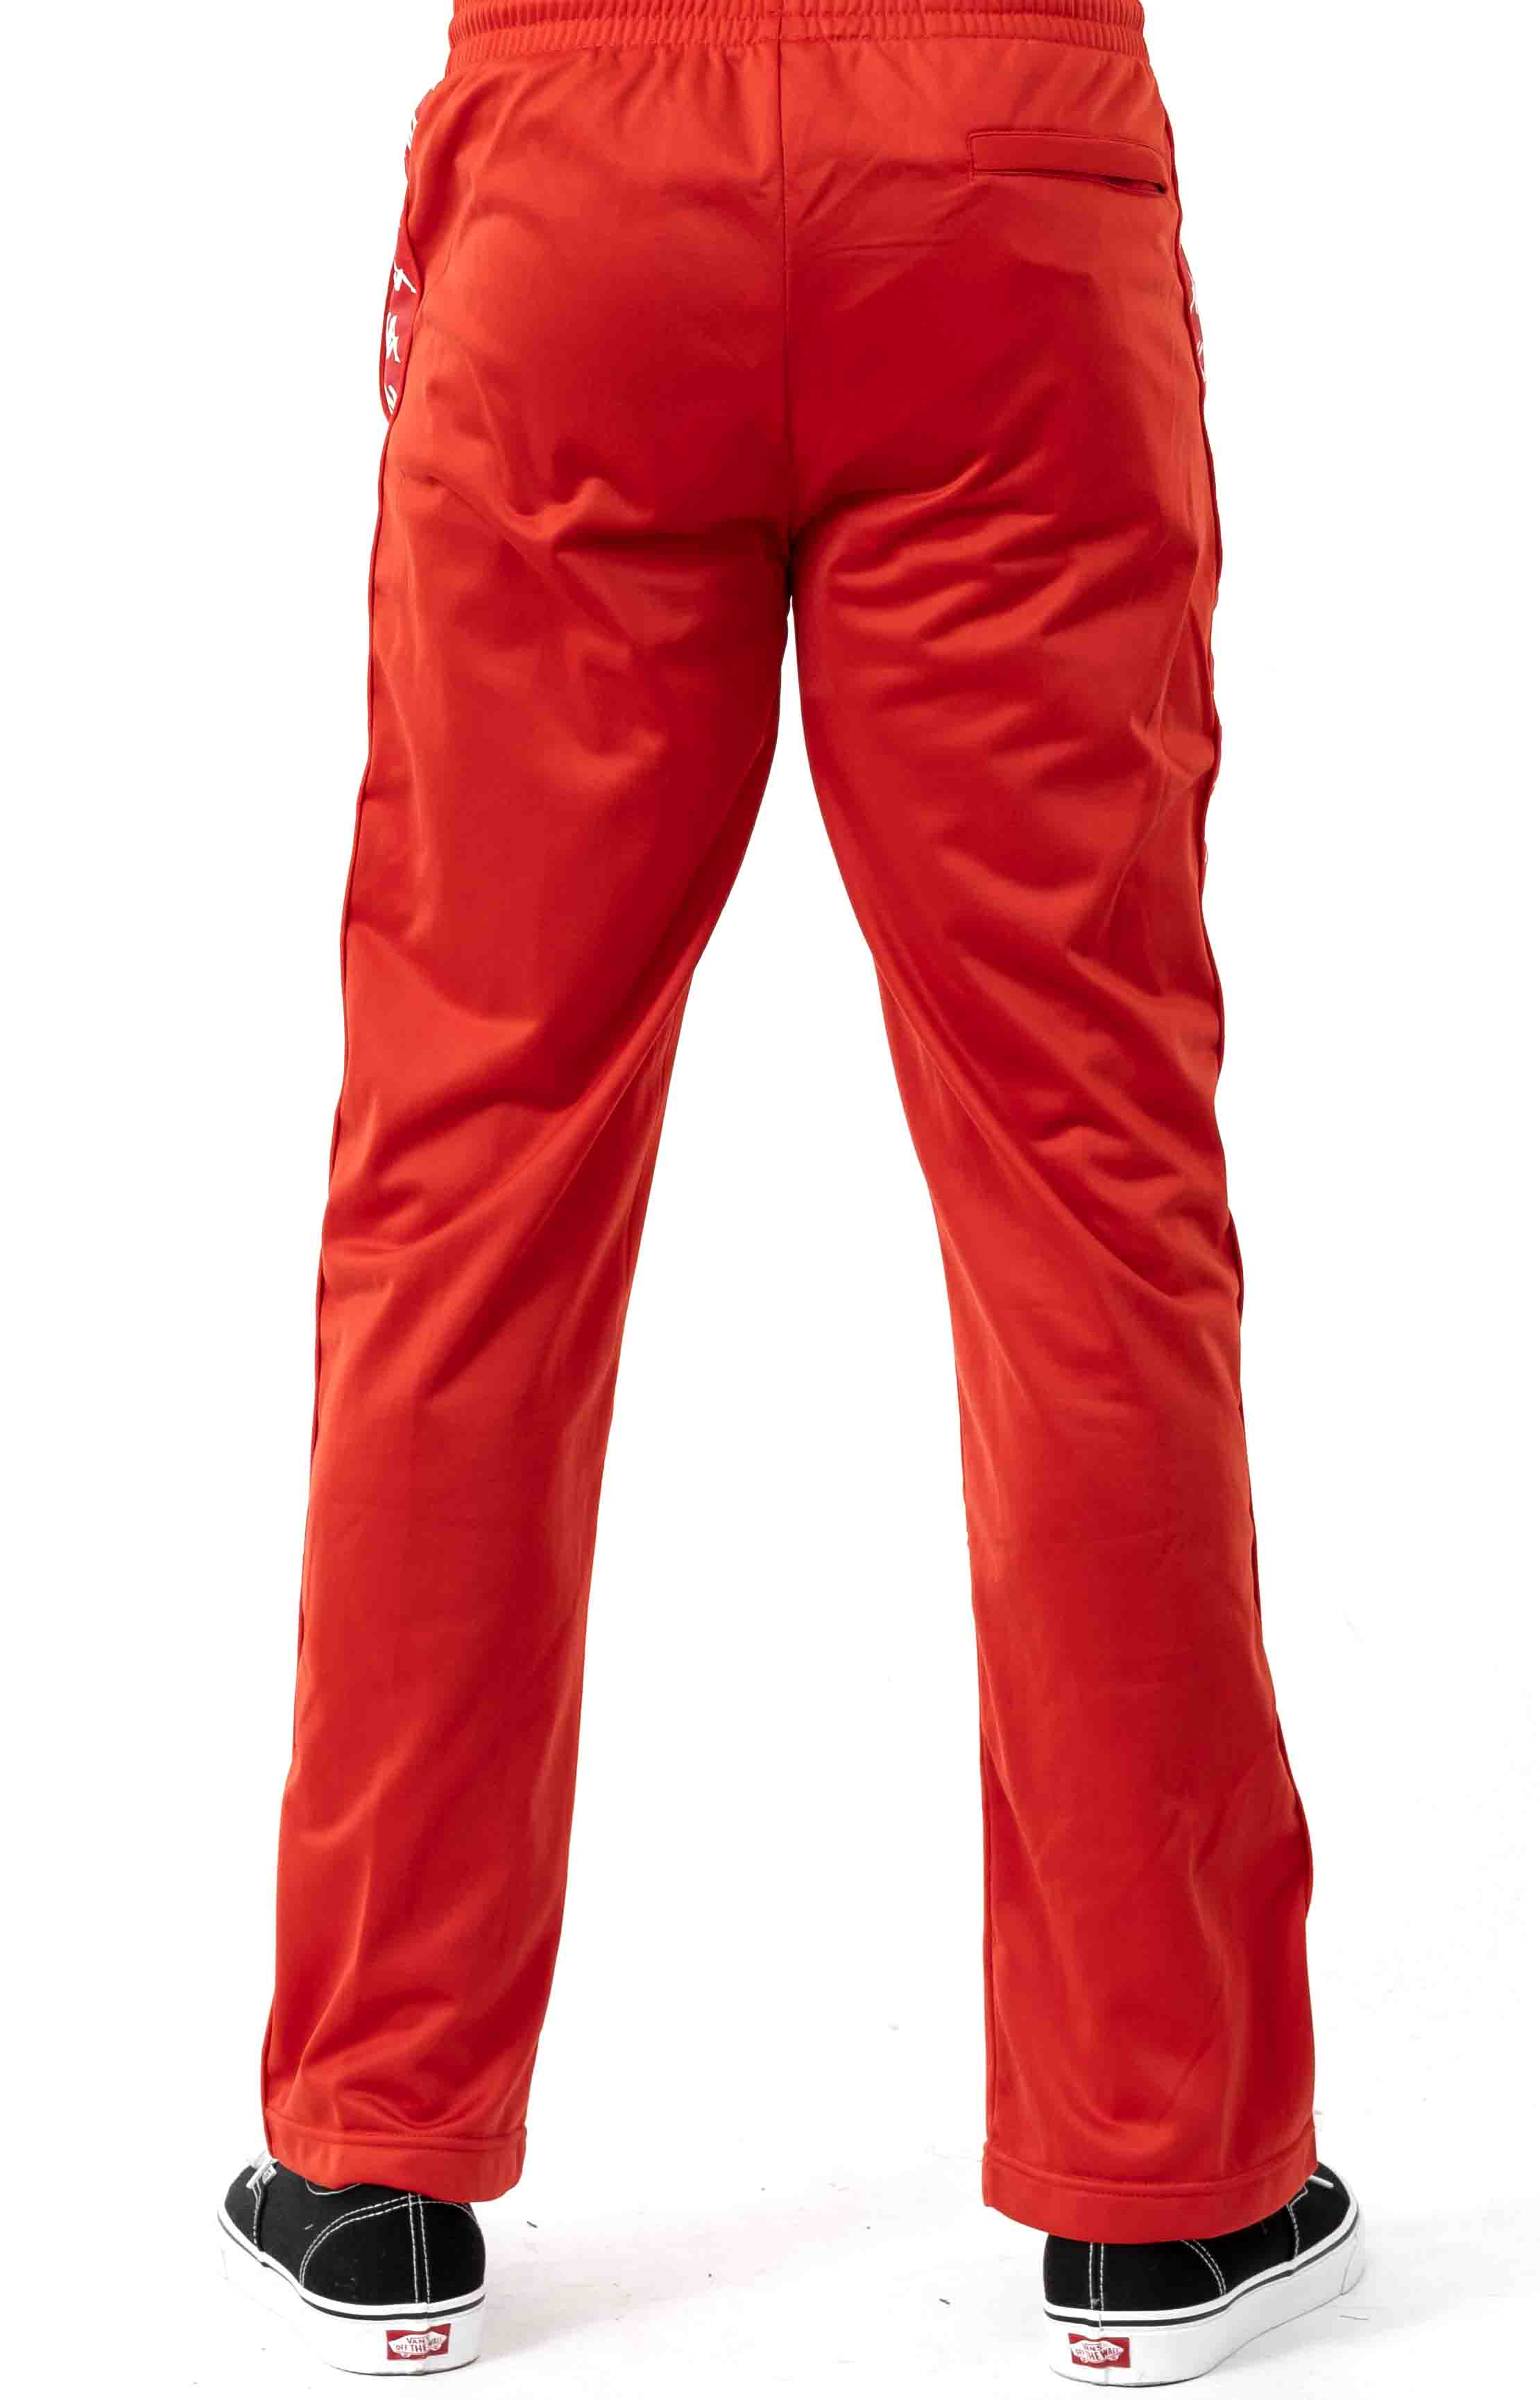 222 Banda Astoriazz Trackpant - Red/White 3